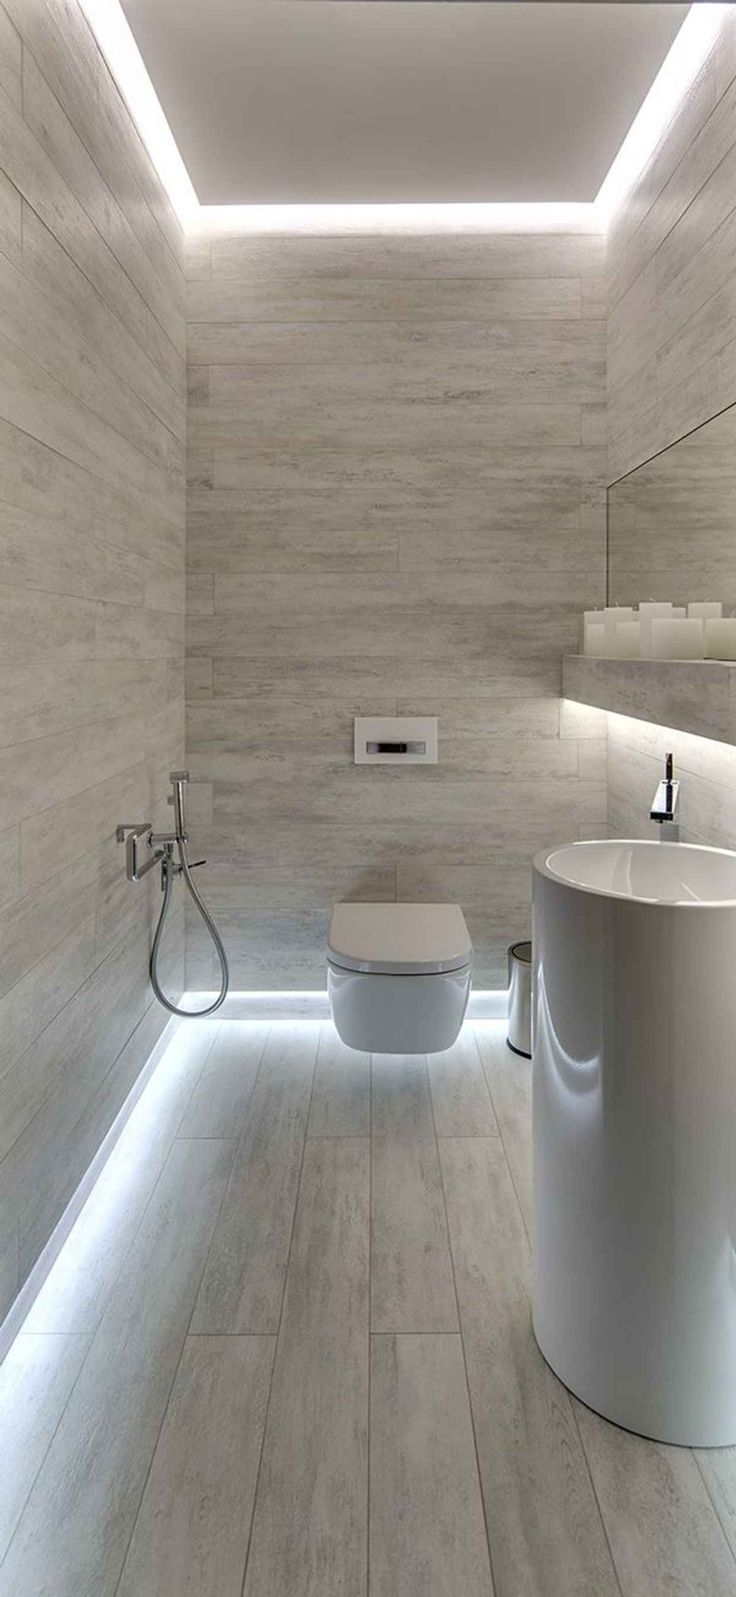 Toilet with built in bidet home design ideas - 30 Examples Of Minimal Interior Design